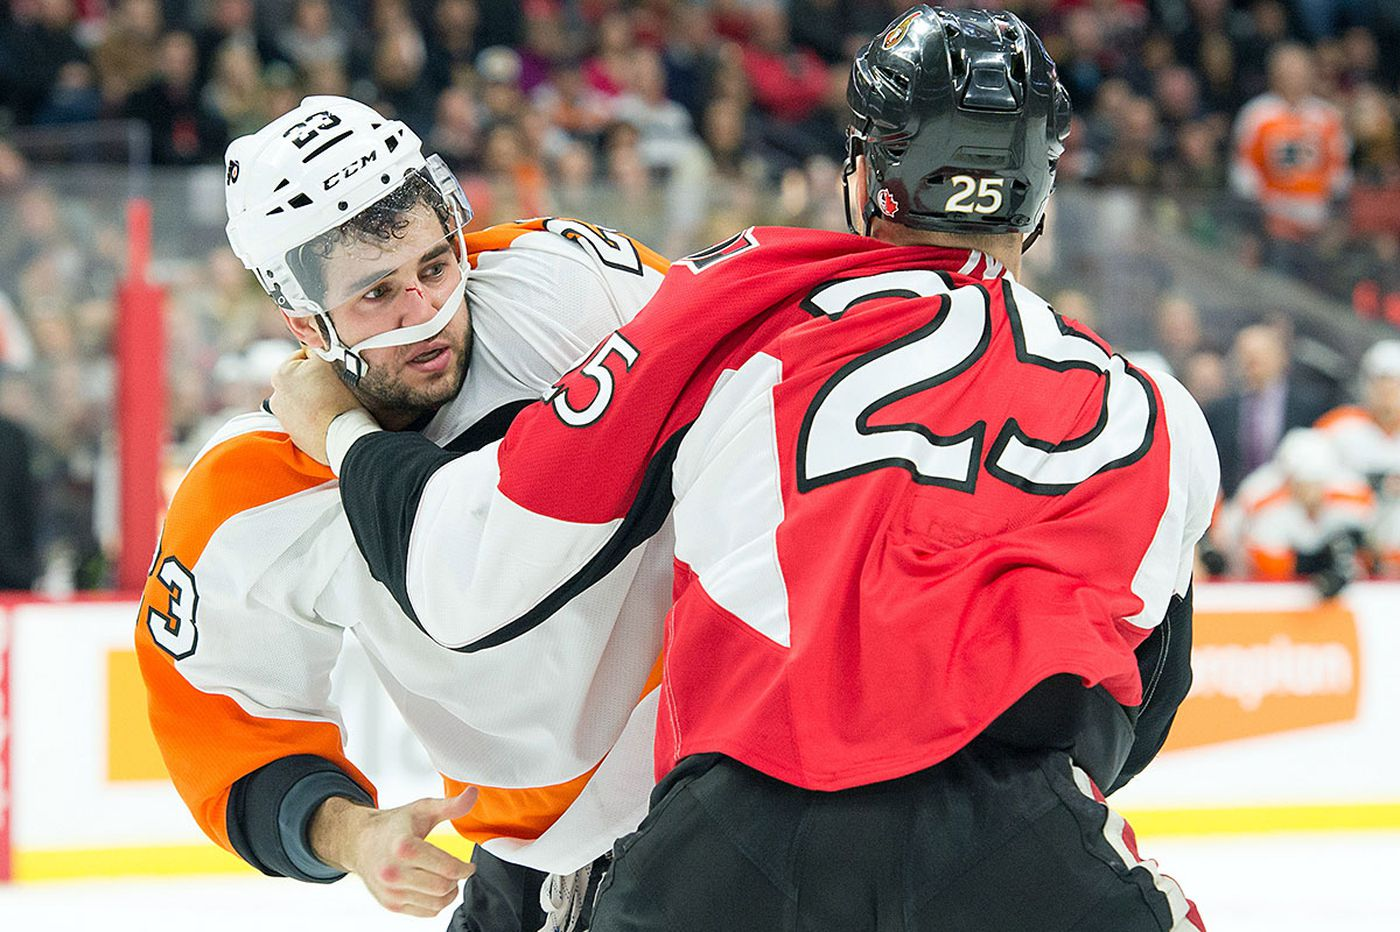 Brandon Manning fighting to keep spot with Flyers